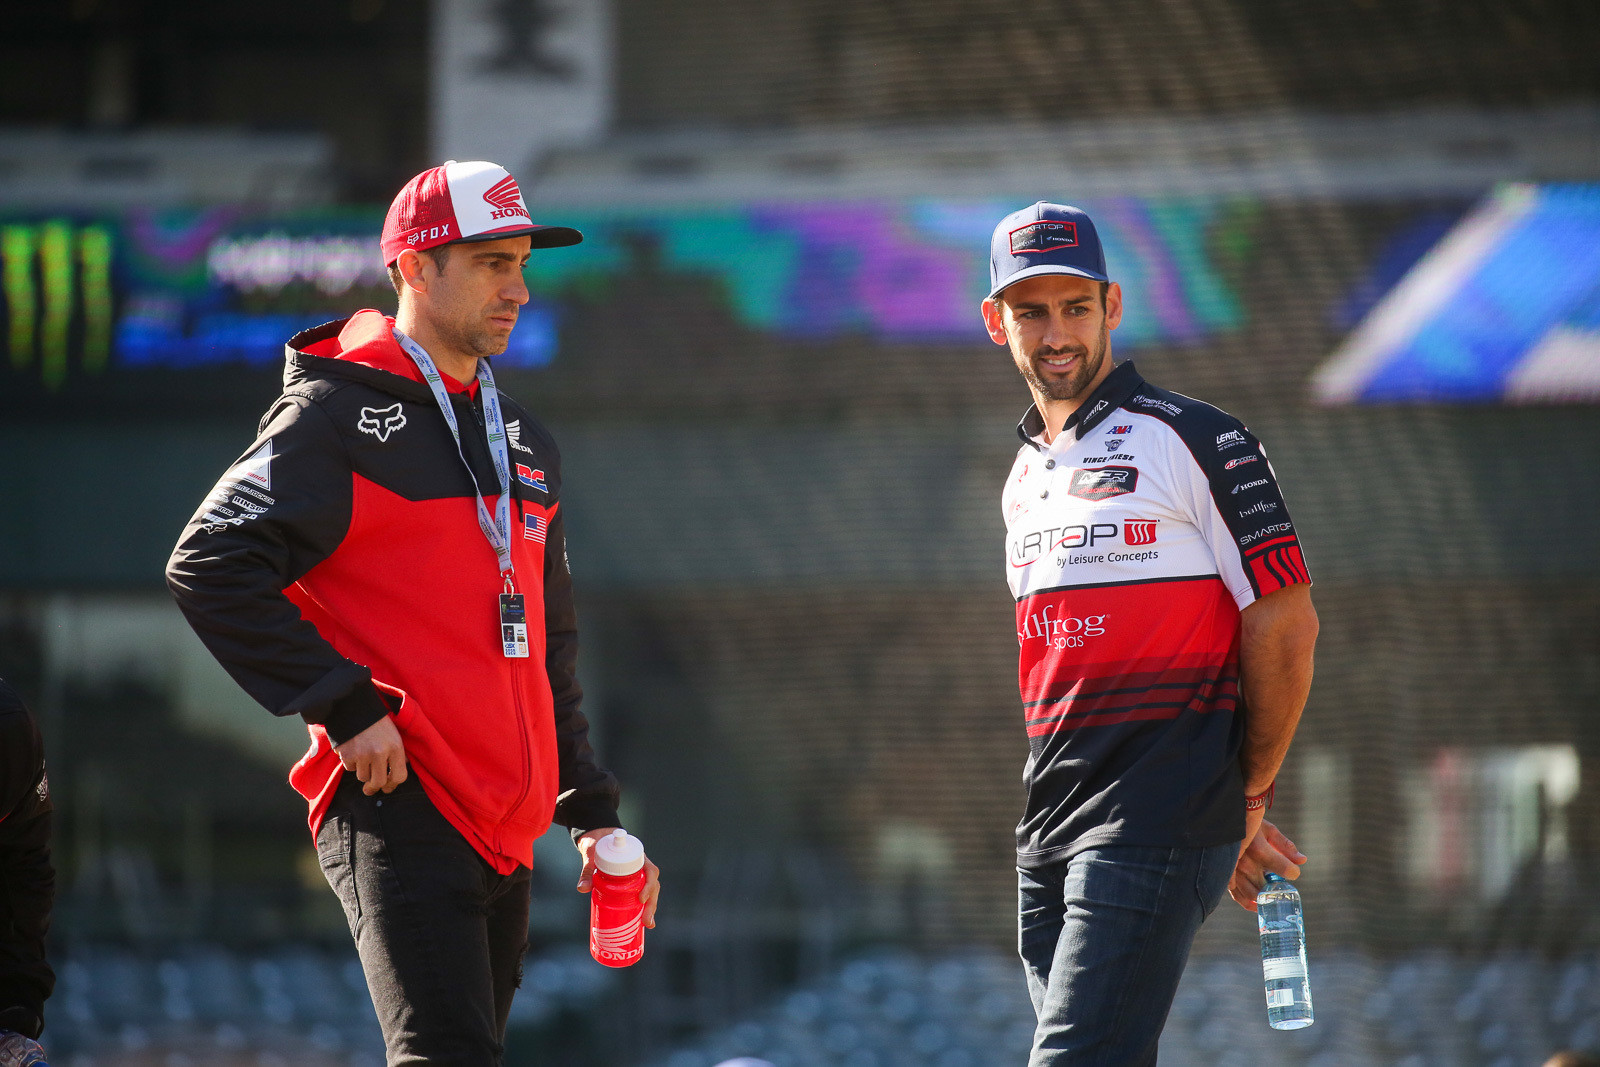 Justin Brayton and Vince Friese checking out the track during Saturday morning's track walk. It was pretty slippery from watering the night before, but it's forming up nicely.